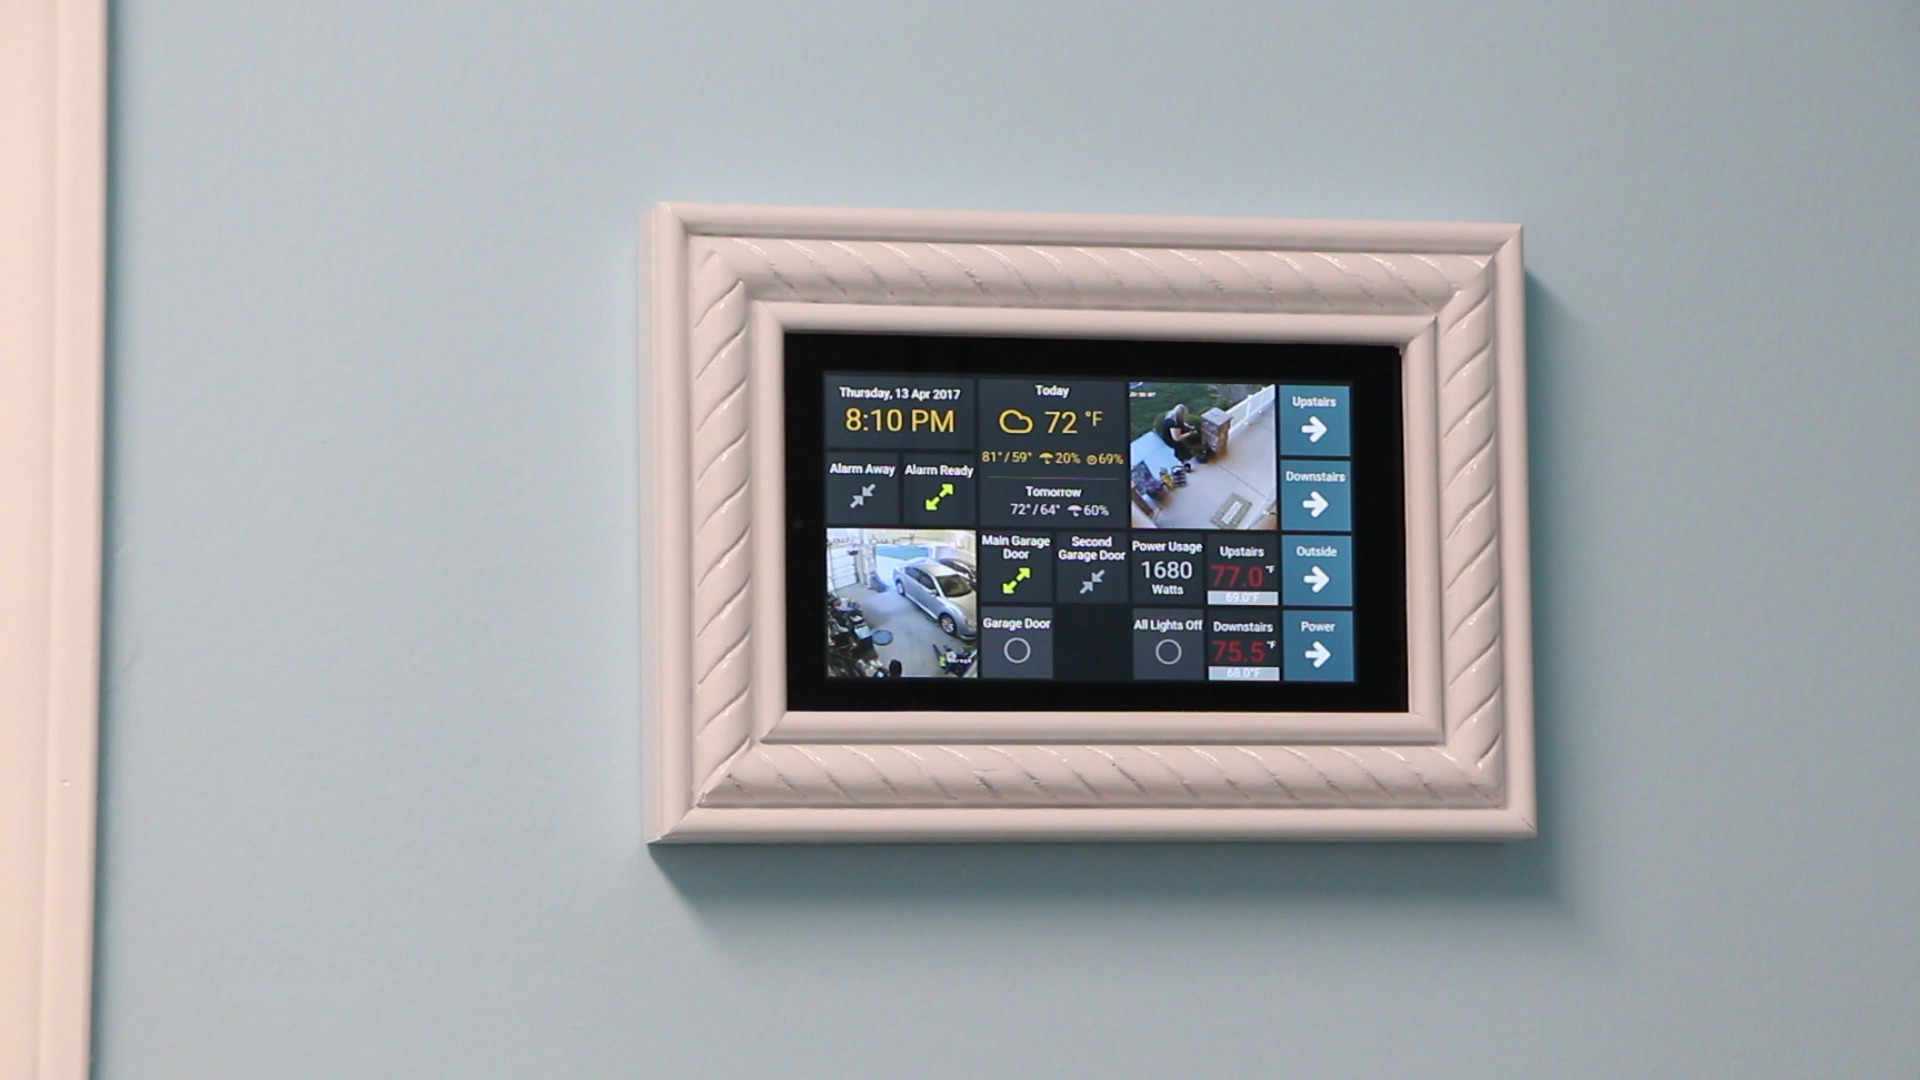 Wall Mounted Amazon Fire 7 Tablet For Home Automation Handmade Crafts Howto Diy Homeautomationideas Tablet Wall Mount Wall Tablet Home Automation